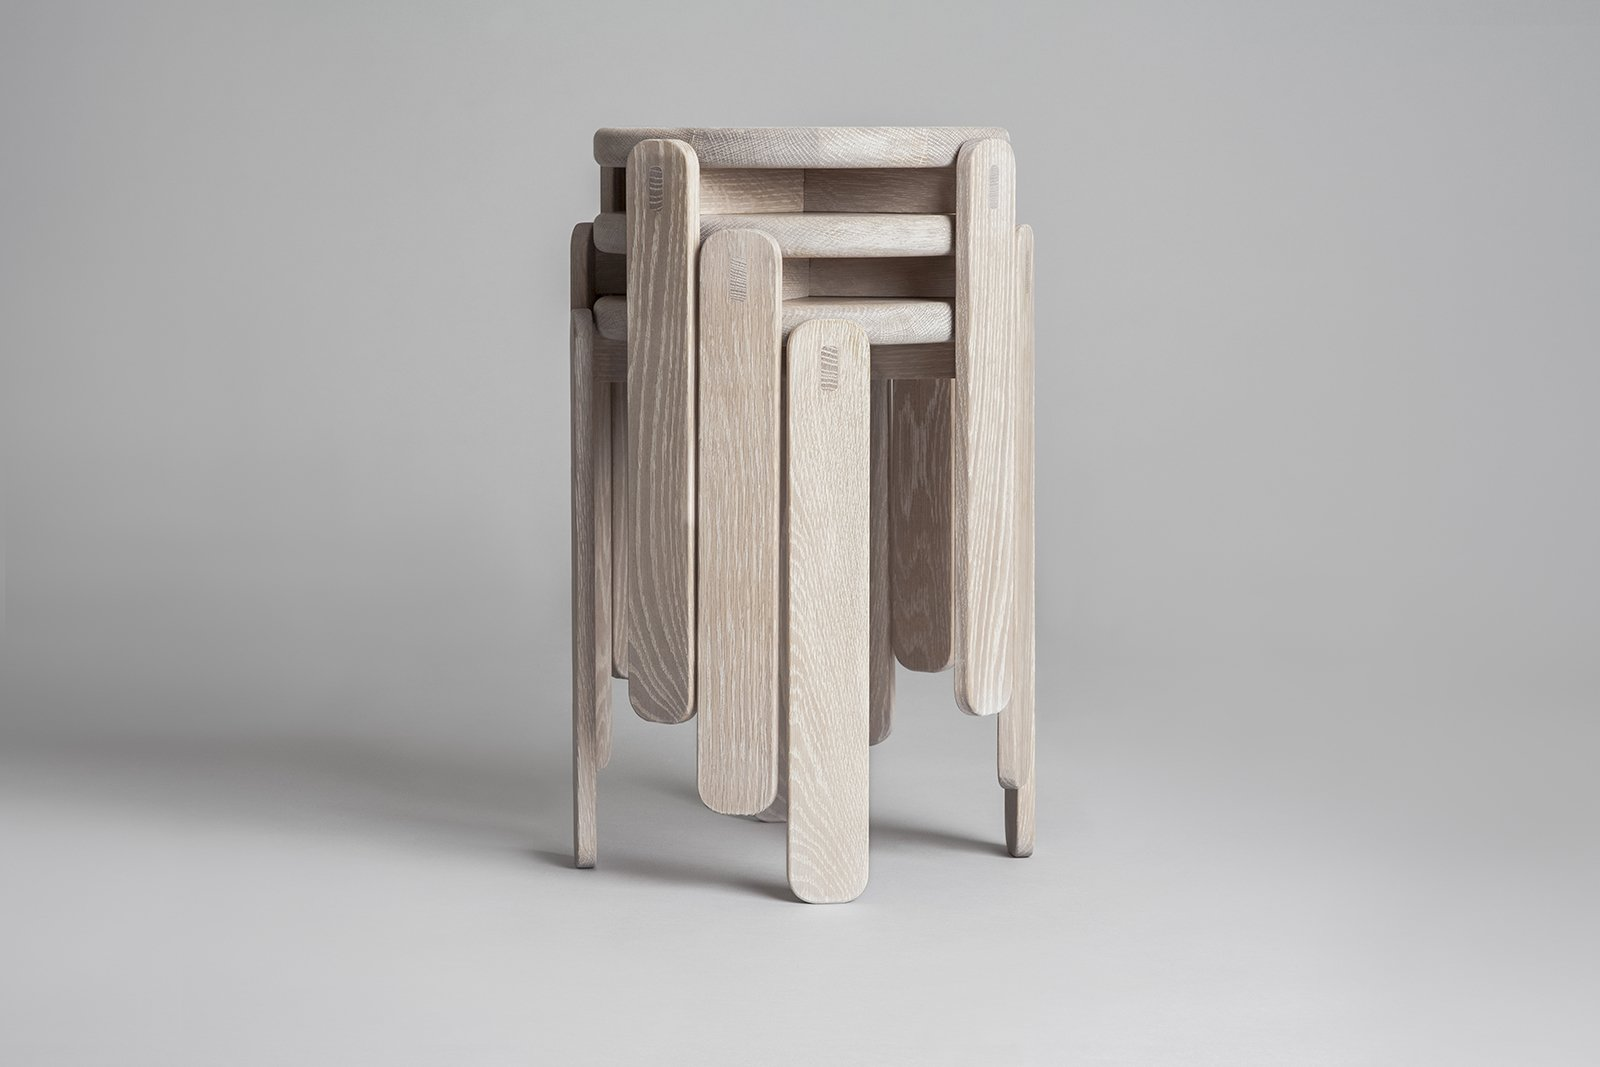 #seatingdesign #seating #stool #Lolly #Gridy #oak #stackable #minimalist #modern #NorwegianPresence #contemporary #furniture   100+ Best Modern Seating Designs by Dwell